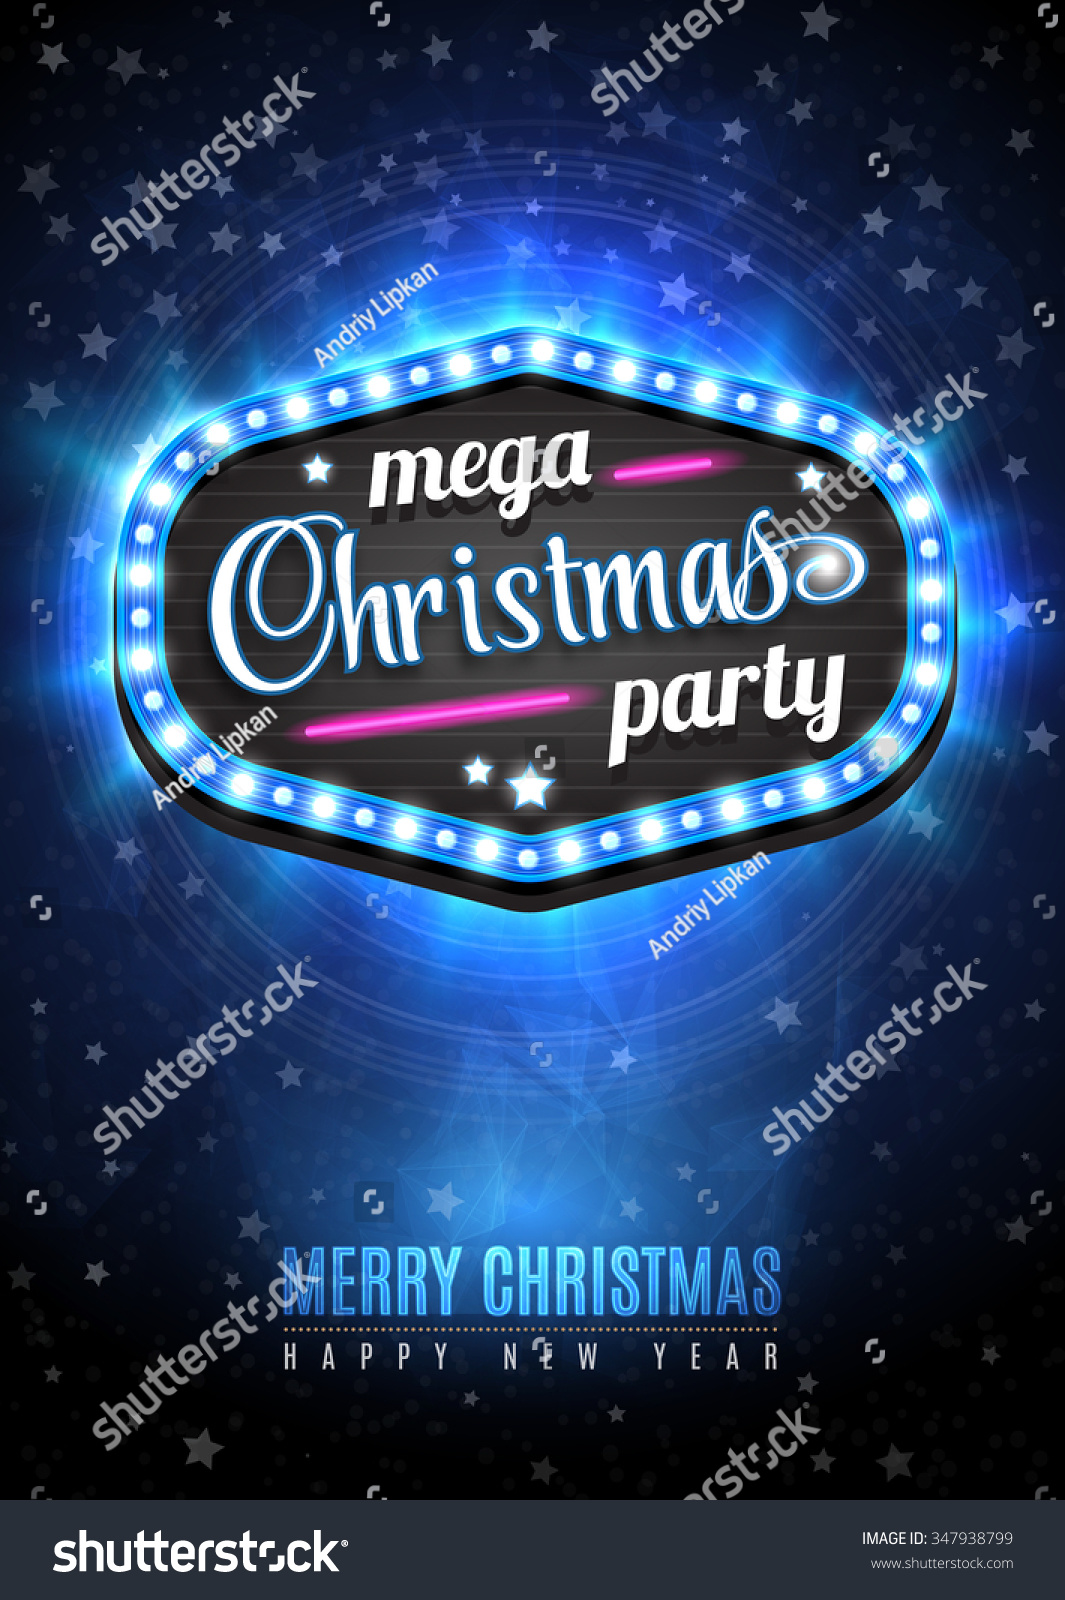 christmas party poster design template snow stock vector 347938799 christmas party poster design template snow and sign mega christmas party in light frame